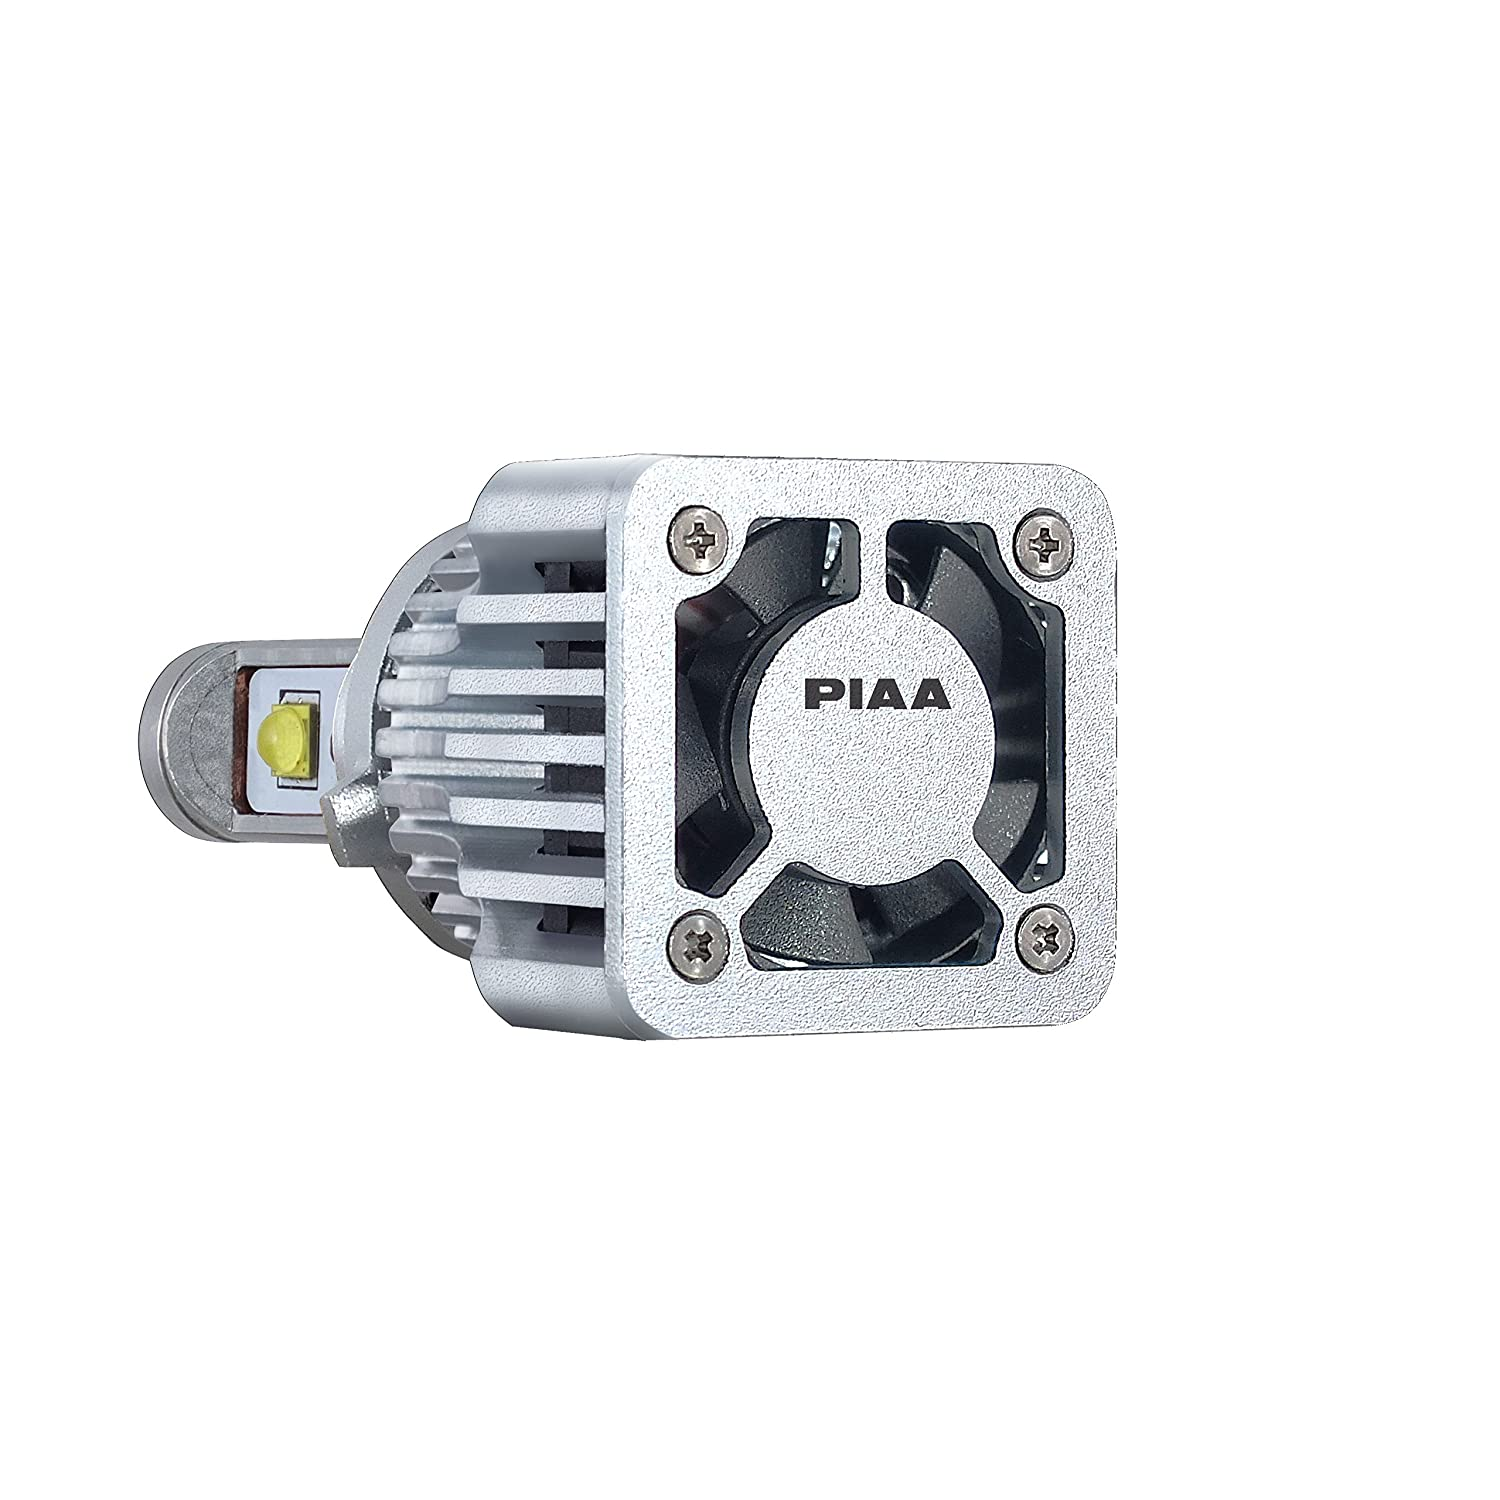 H16 White LED Performance Bulb H11 PIAA 17102 H8 Twin Pack